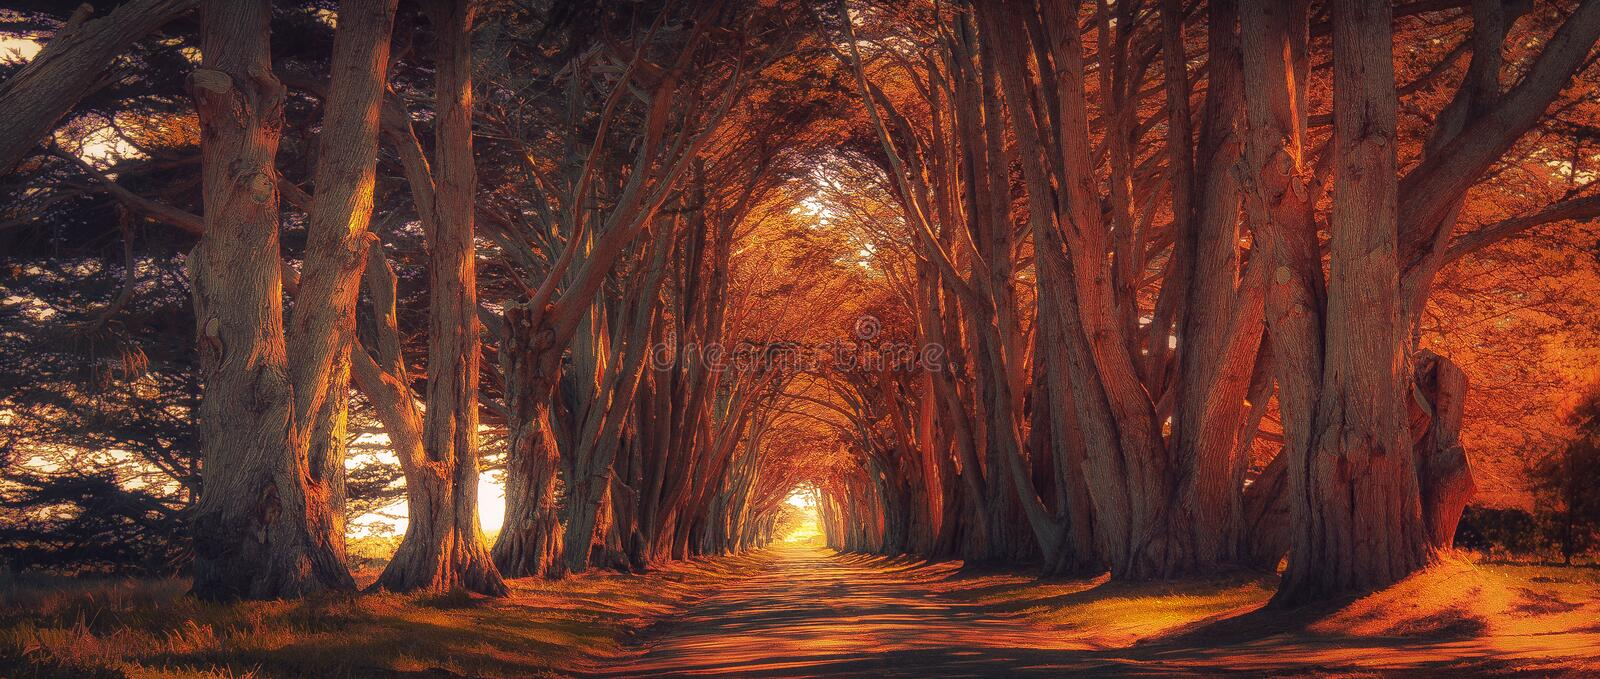 Cyrpus tree tunnel at Sunset. The historic cyrpus tree tunnel in California at sunset royalty free stock photo